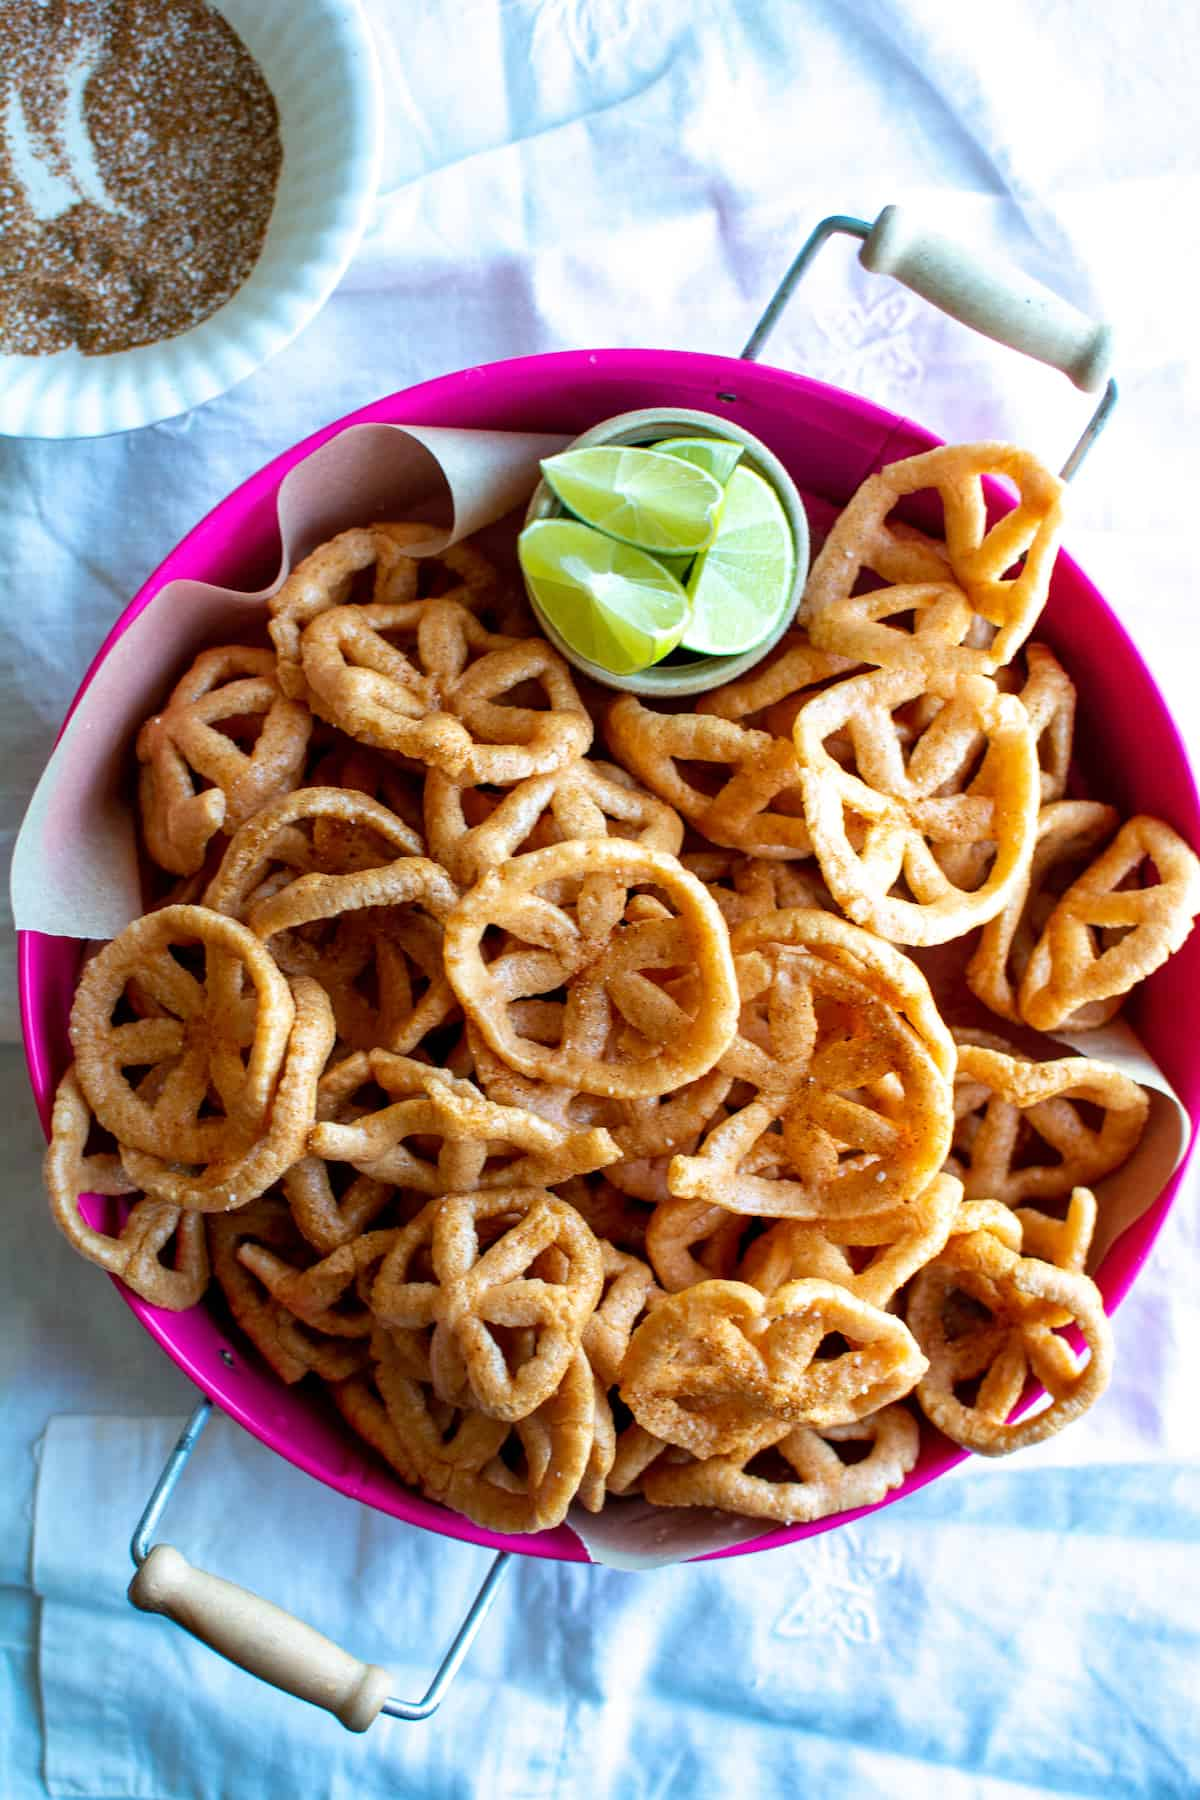 Overhead image of Mexican pinwheel chips in a pink tray with a dish of lime wedges on the side and a bowl of spice mix.